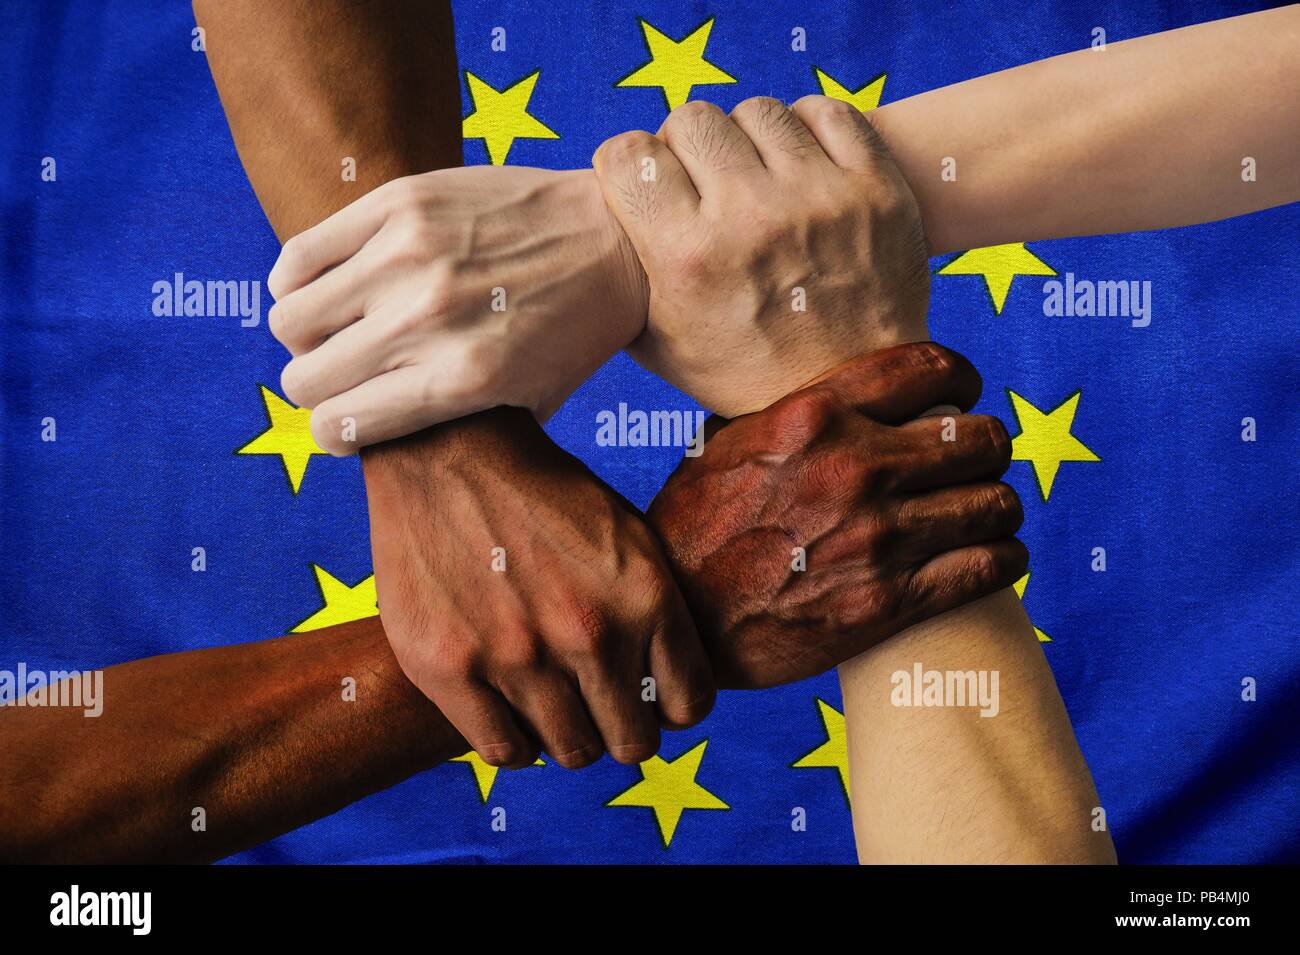 Europe flag multicultural group of young people integration diversity isolated. - Stock Image